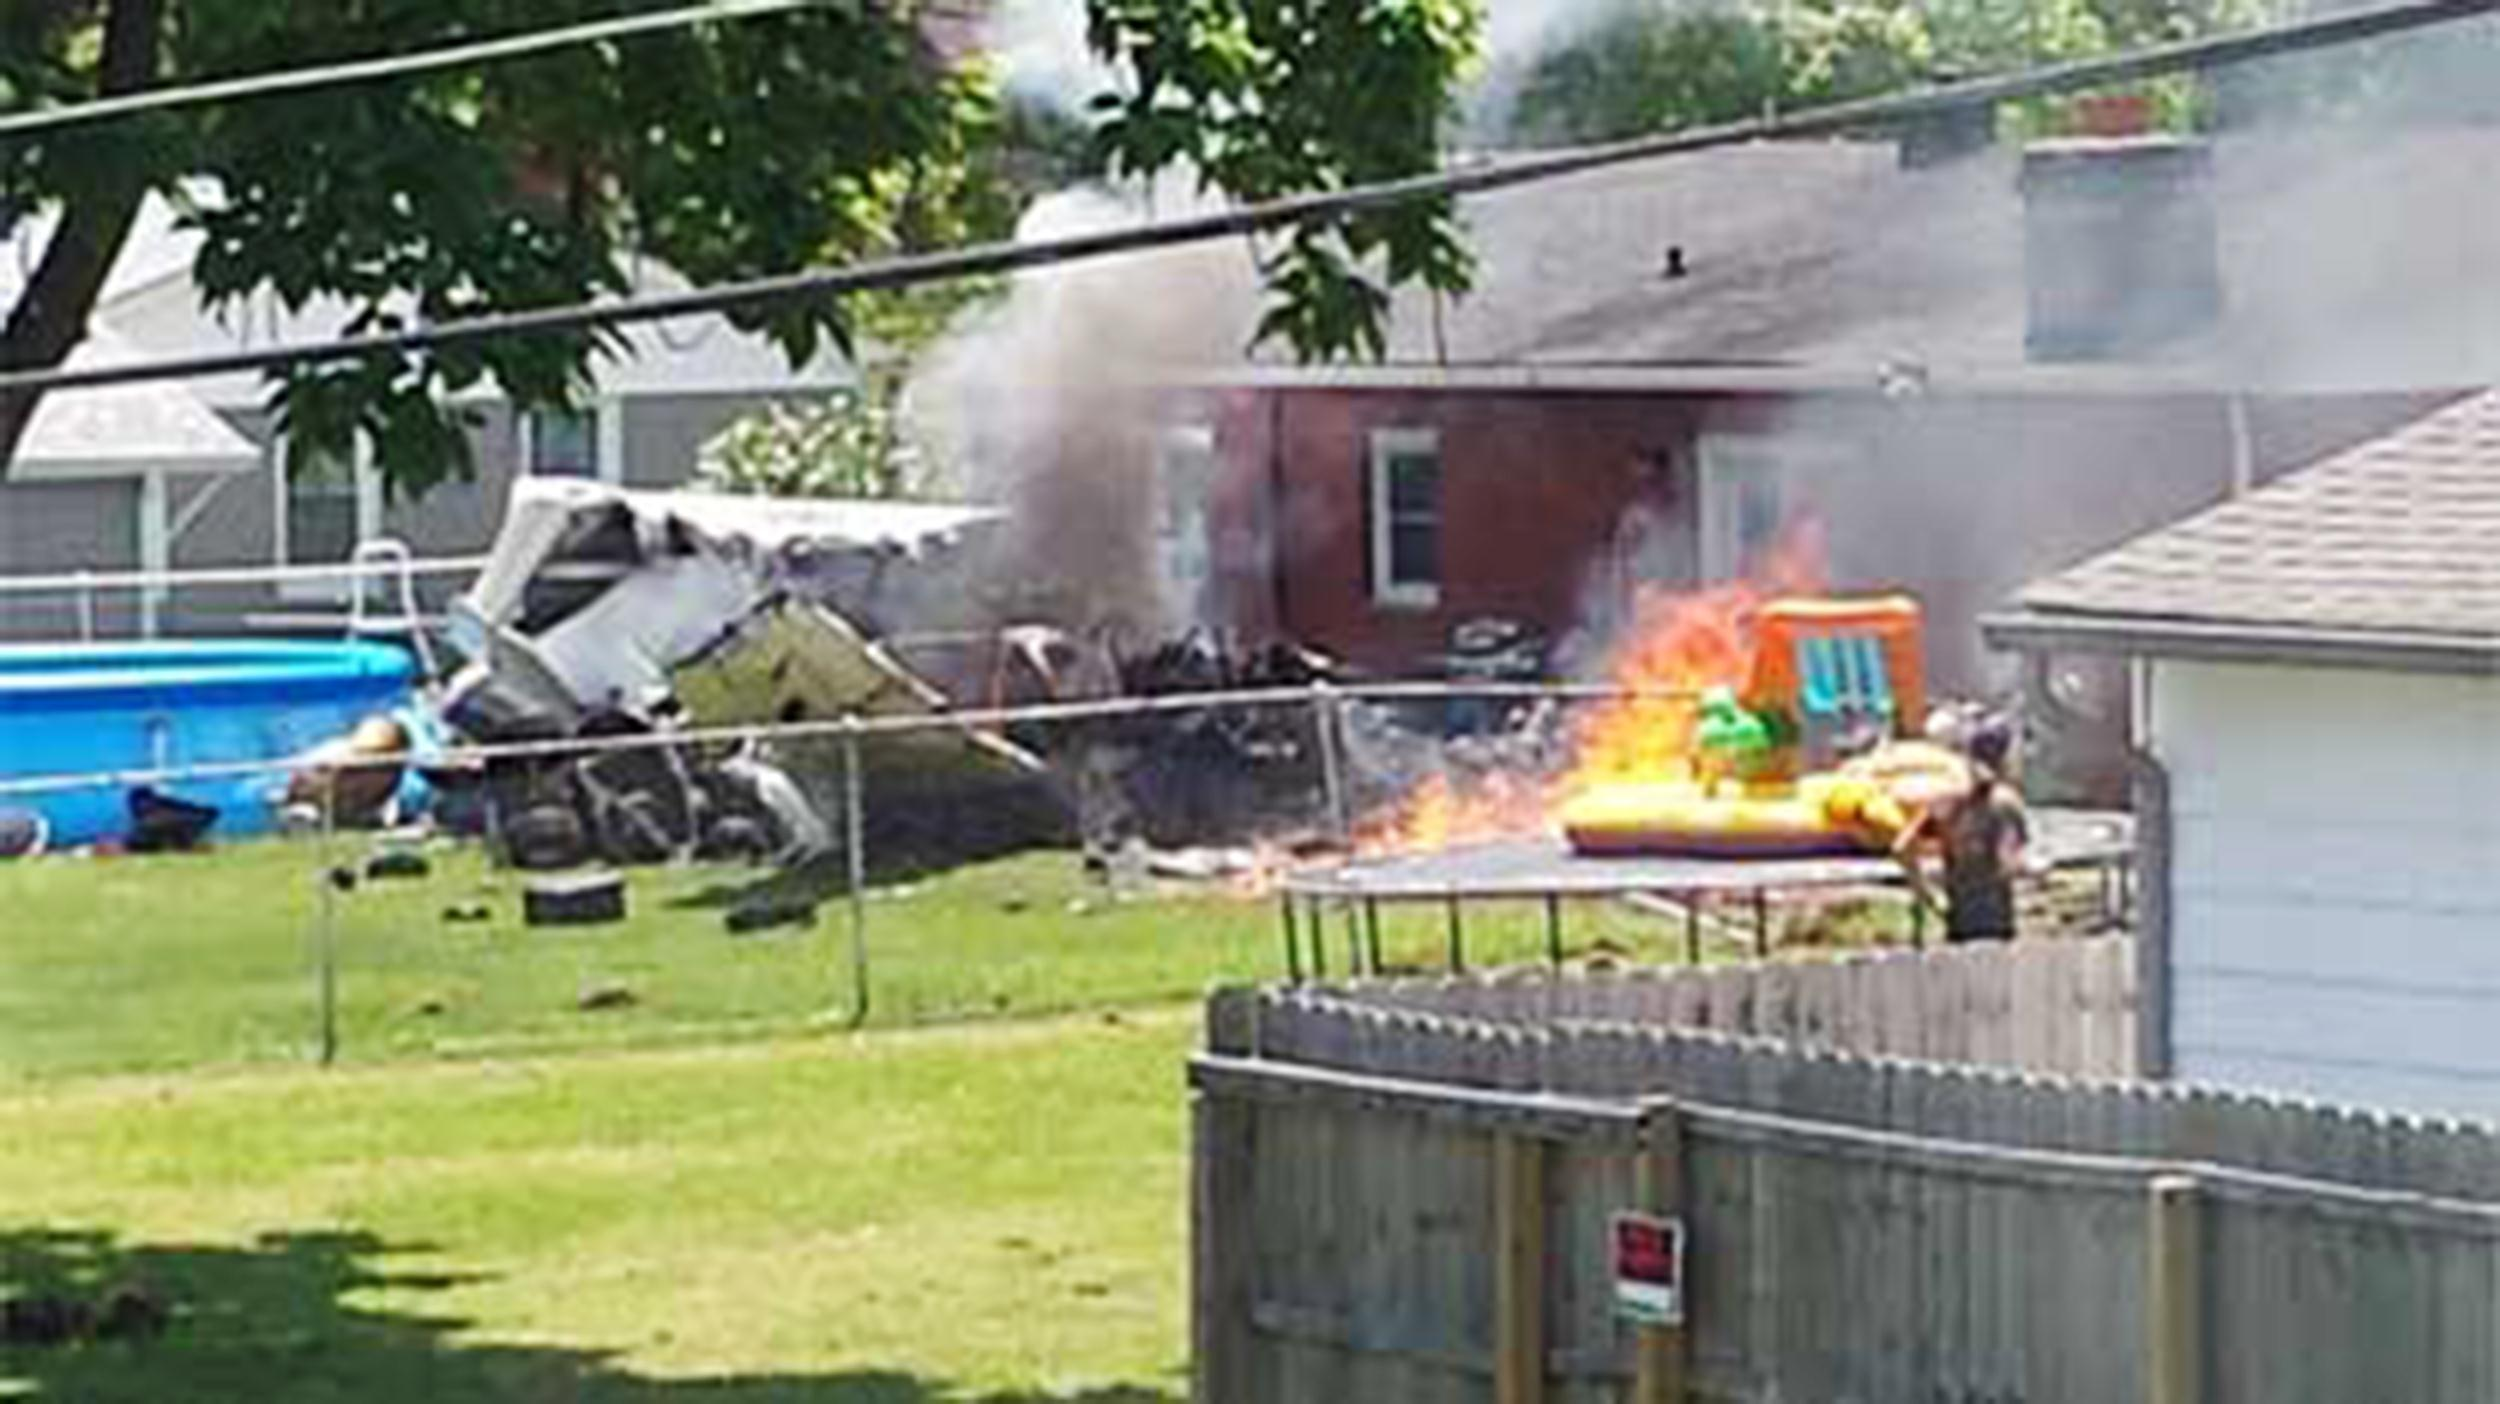 Small Plane Crashes Into Two Homes in Indiana, Killing One - NBC News